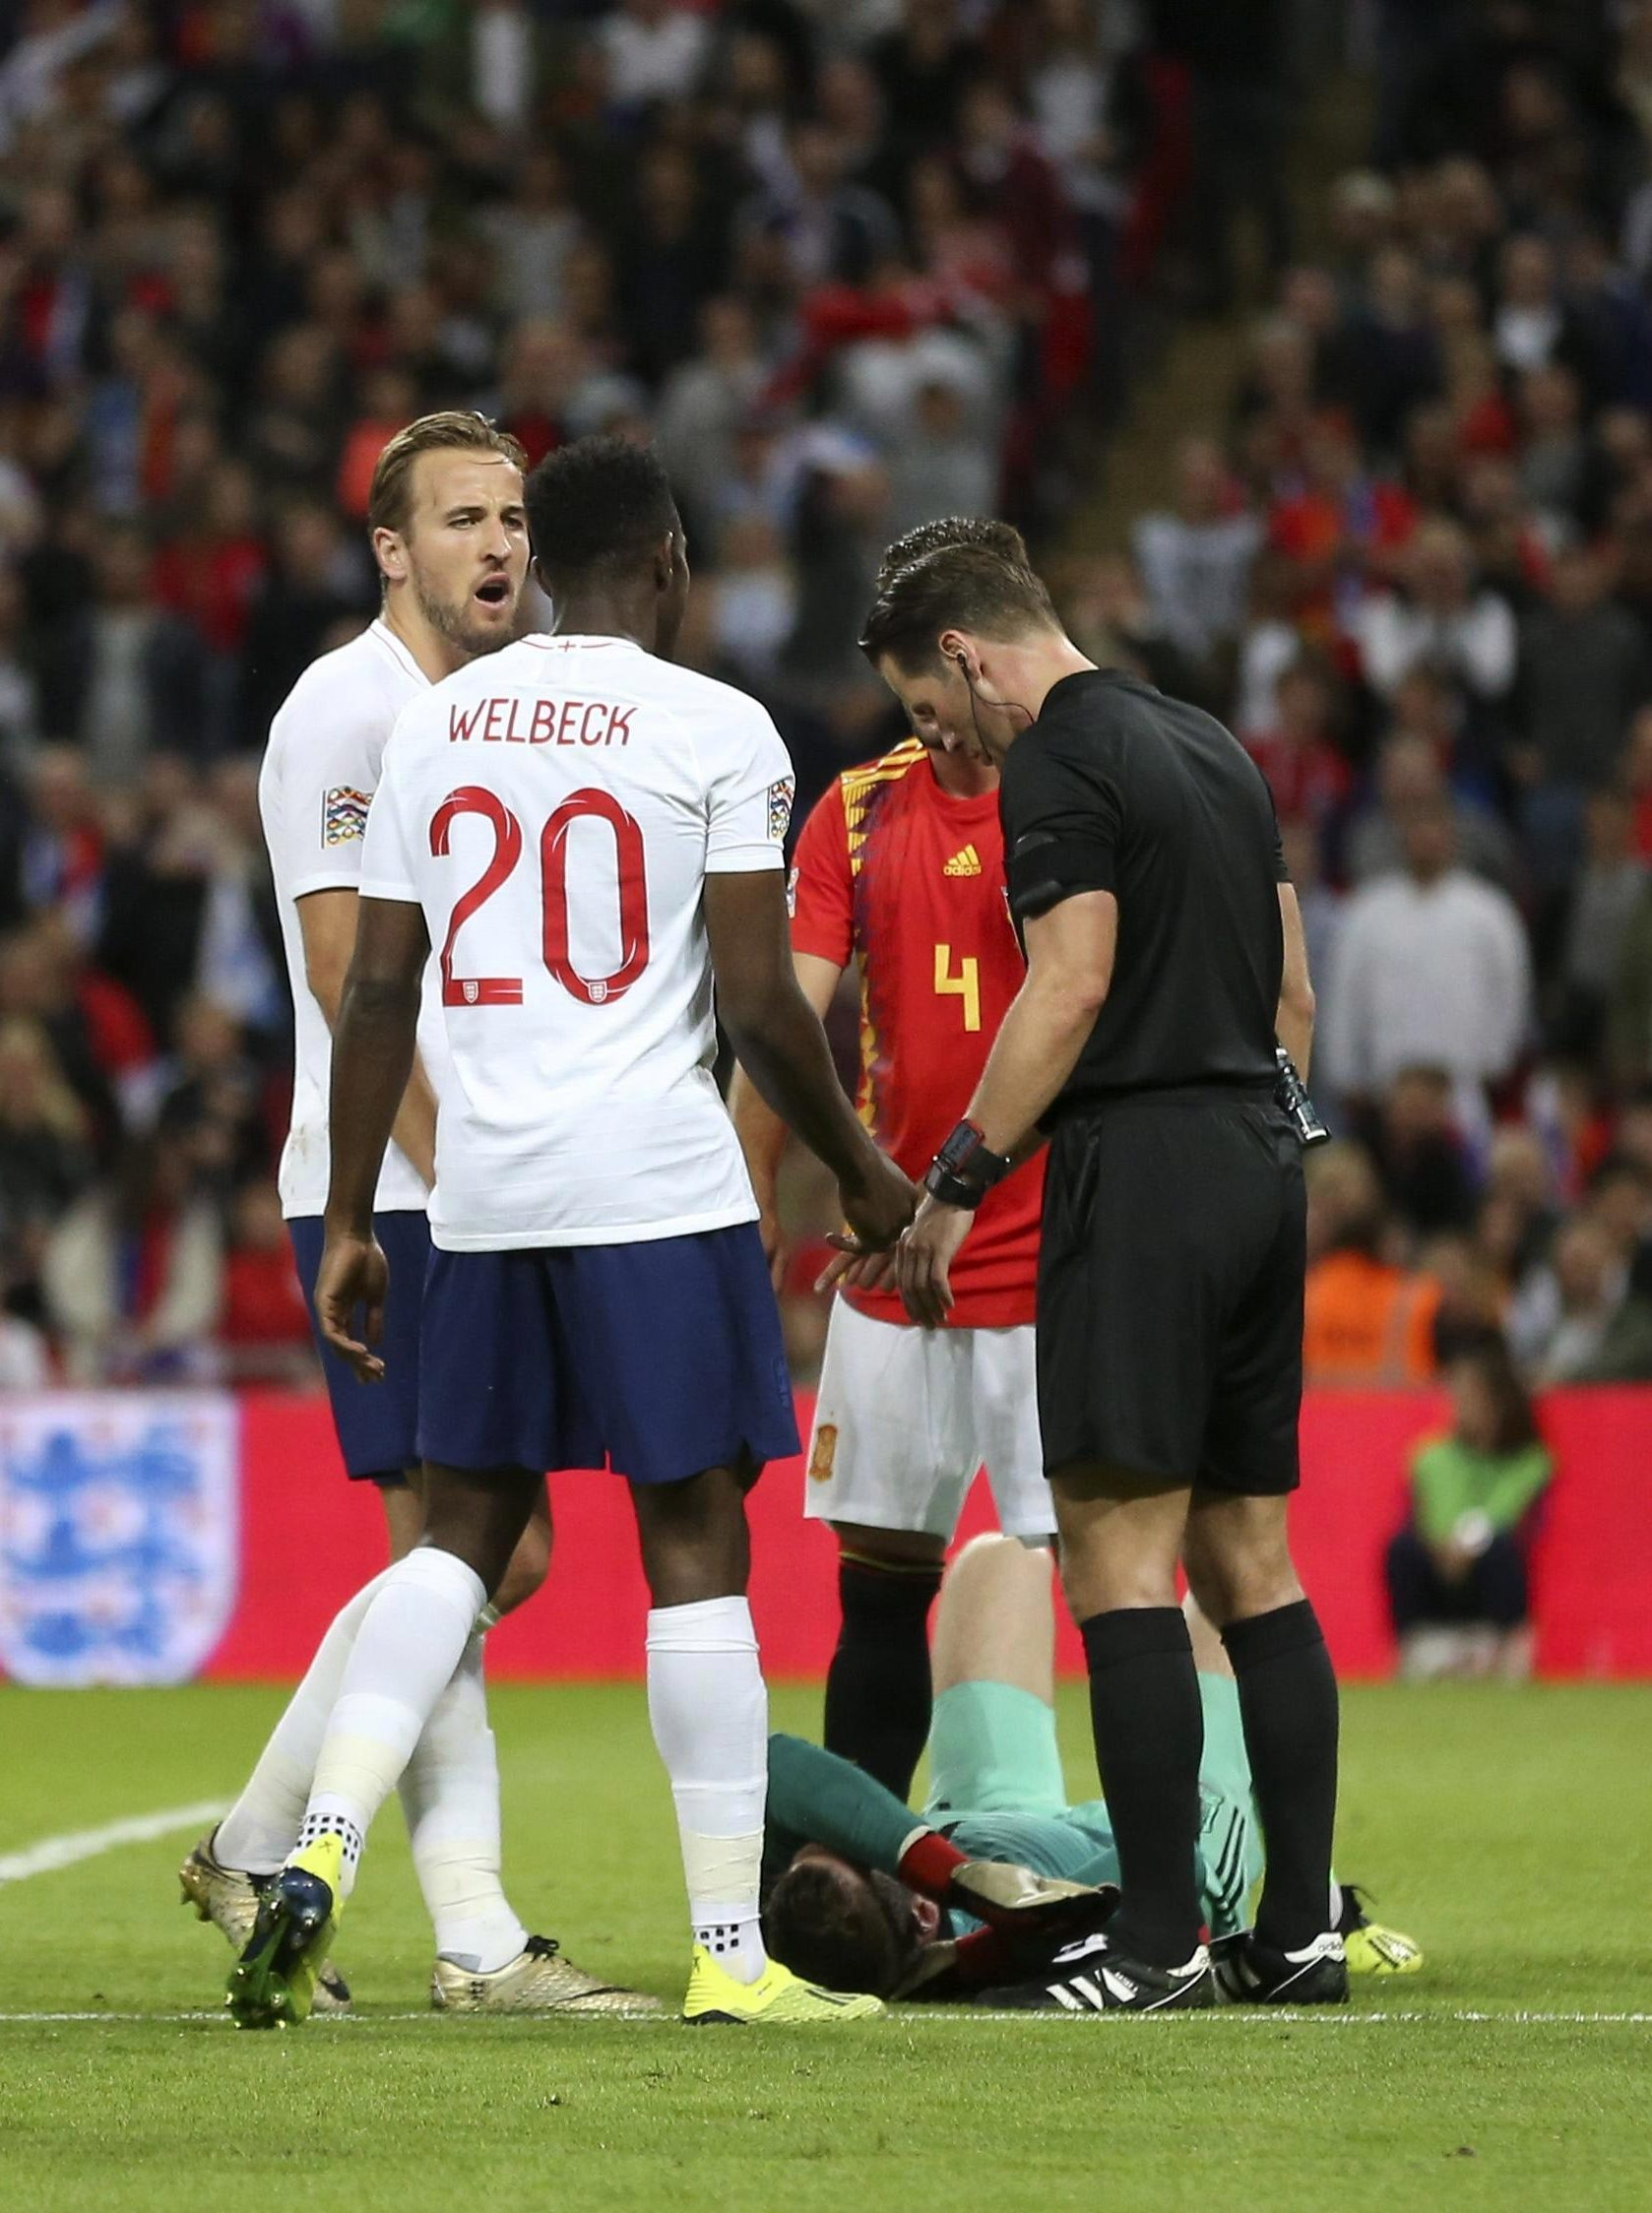 Welbeck protested his innocence but the referee felt De Gea was impeded